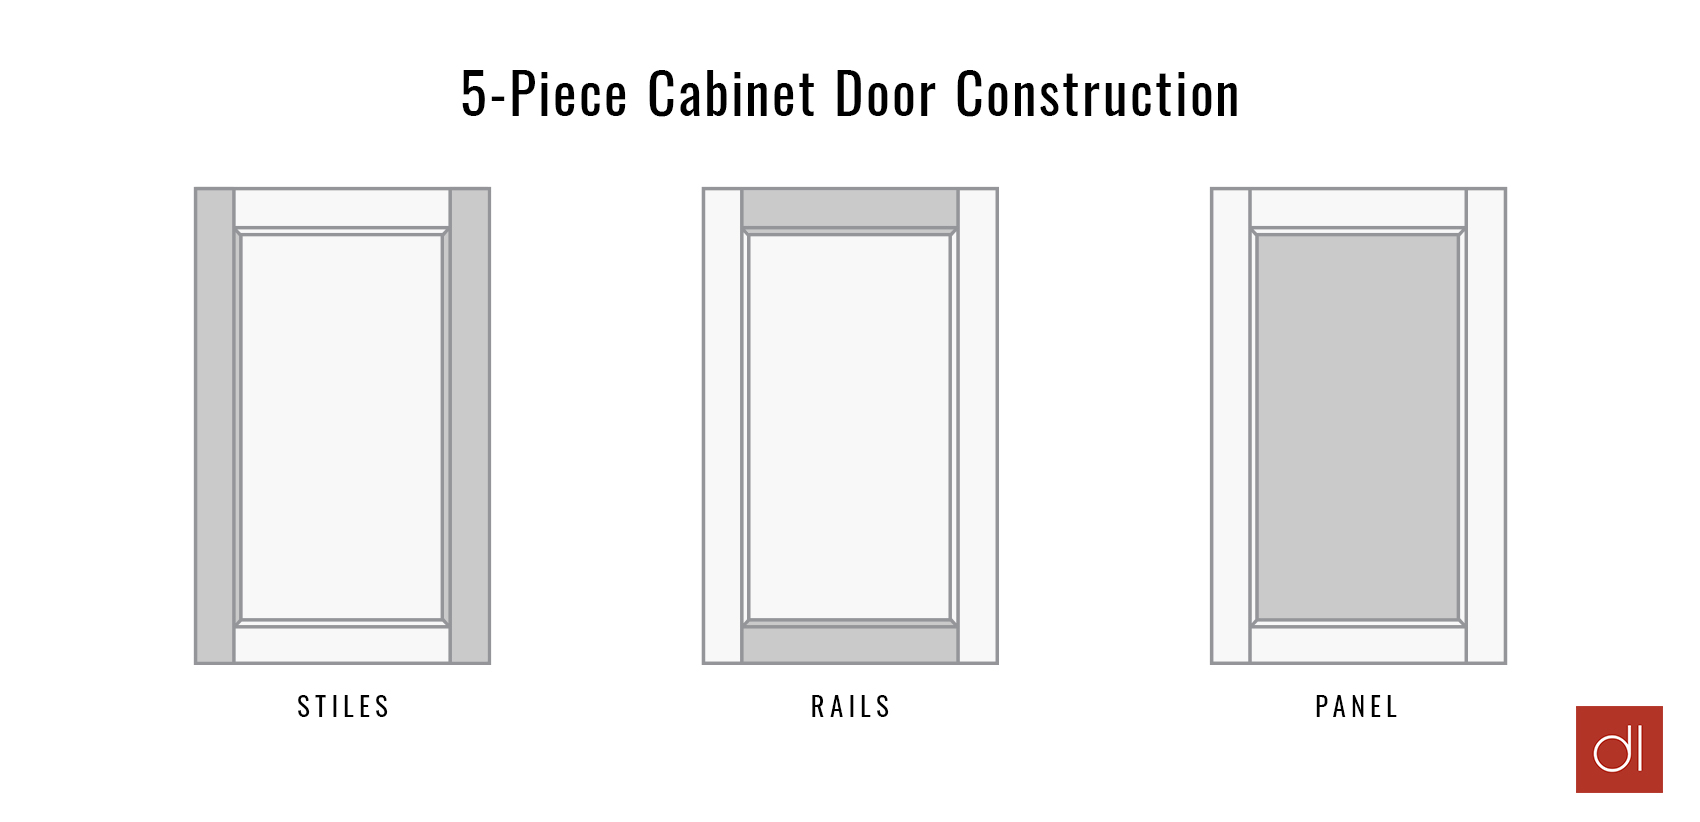 A graphic for 5-piece cabinet door construction